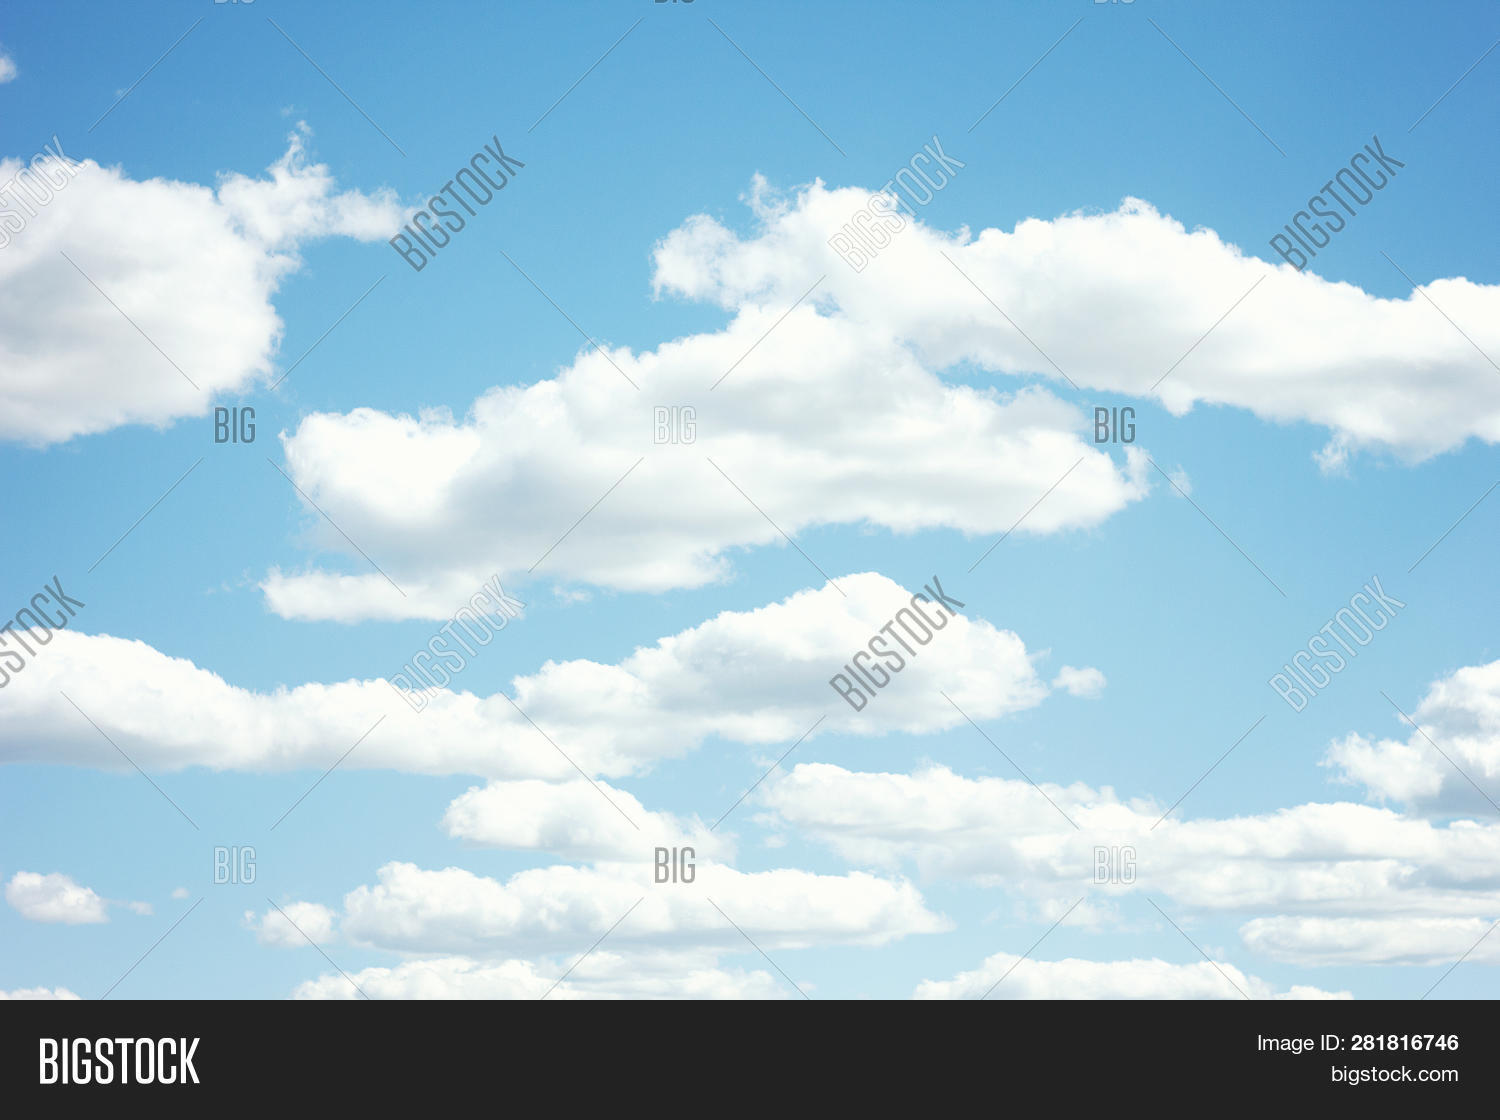 abstract,air,atmosphere,background,beautiful,beauty,blue,bright,clear,climate,cloud,cloudscape,cloudy,color,cumulus,day,environment,fluffy,front,heaven,high,image,landscape,light,nature,nobody,outdoor,overcast,pattern,photo,scenic,season,seasonal,sky,space,spring,summer,sun,sunlight,sunny,sunshine,texture,tranquil,vibrant,view,weather,white